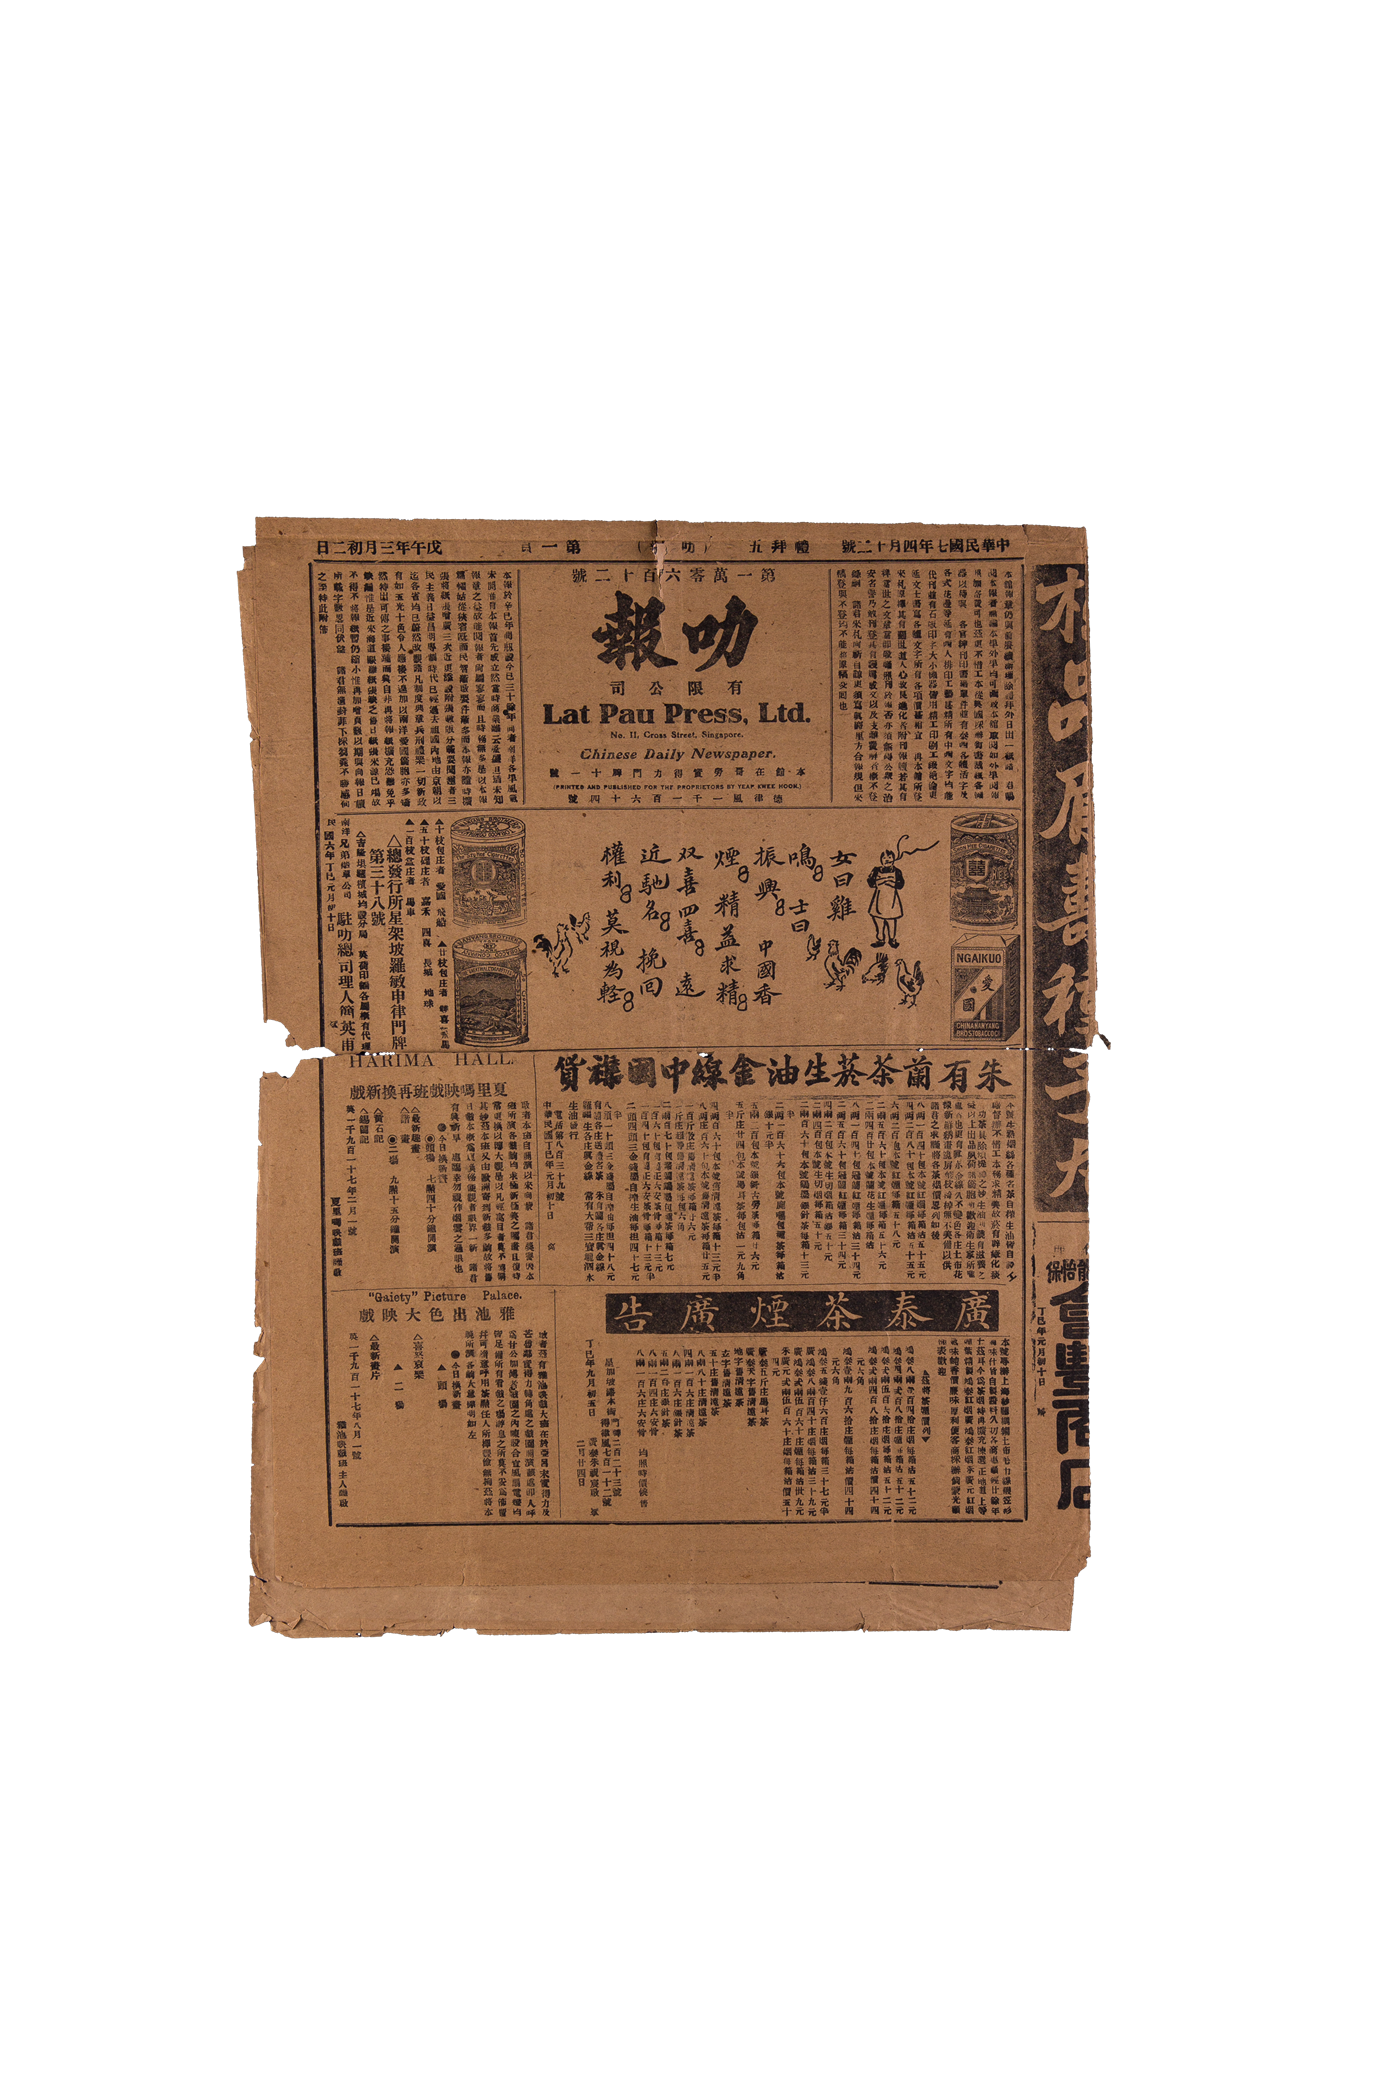 Early Chinese Newspapers